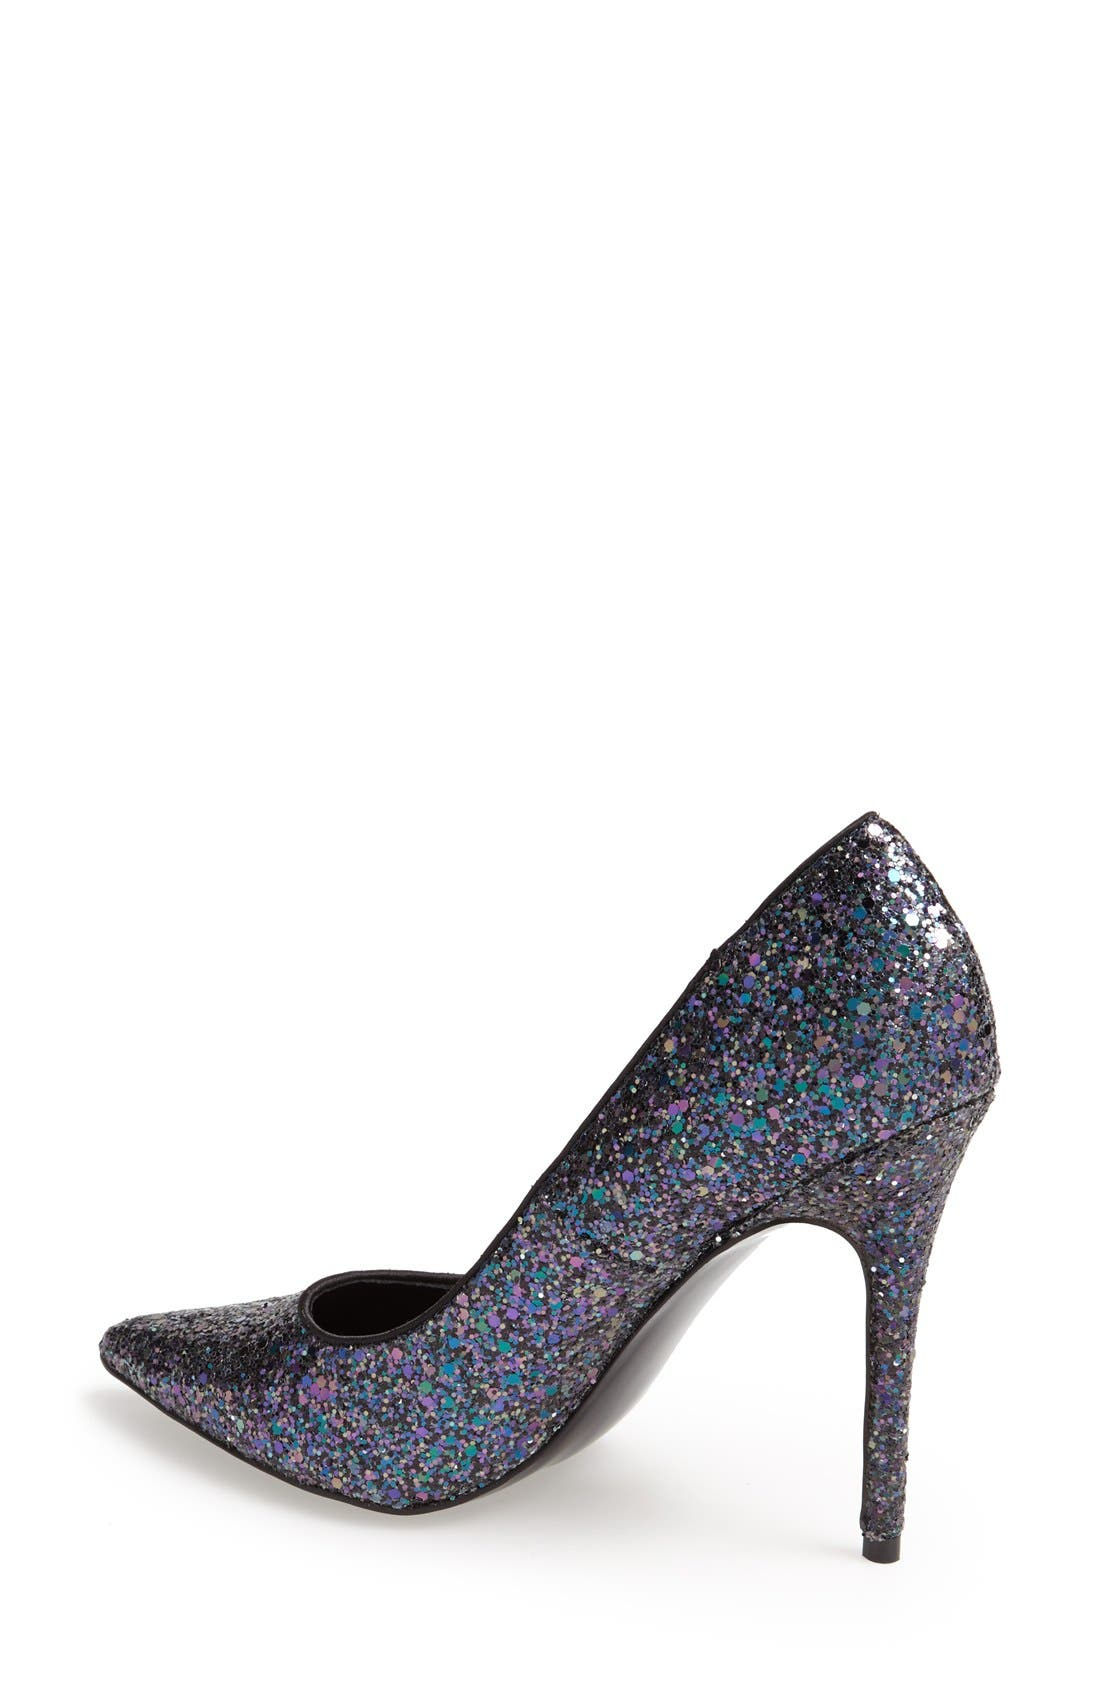 Alternate Image 2  - Steve Madden 'Atlantyc' Glitter Pump (Women)